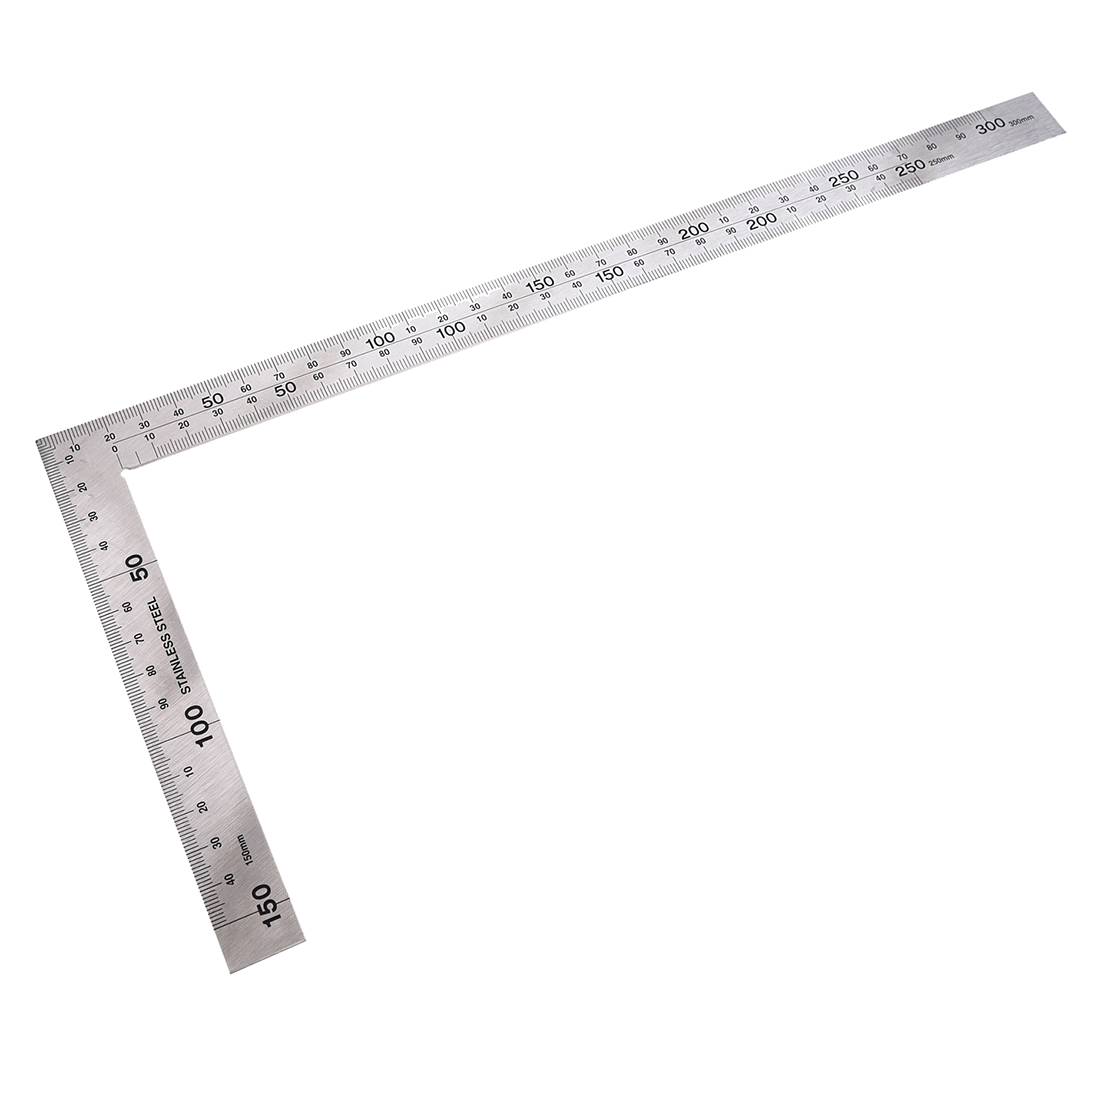 SOSW-150 x 300mm Stainless Steel Metric Try Square Ruler 300mm multifunctional combination square ruler stainless steel horizontal removable square ruler angle square tools metal ruler